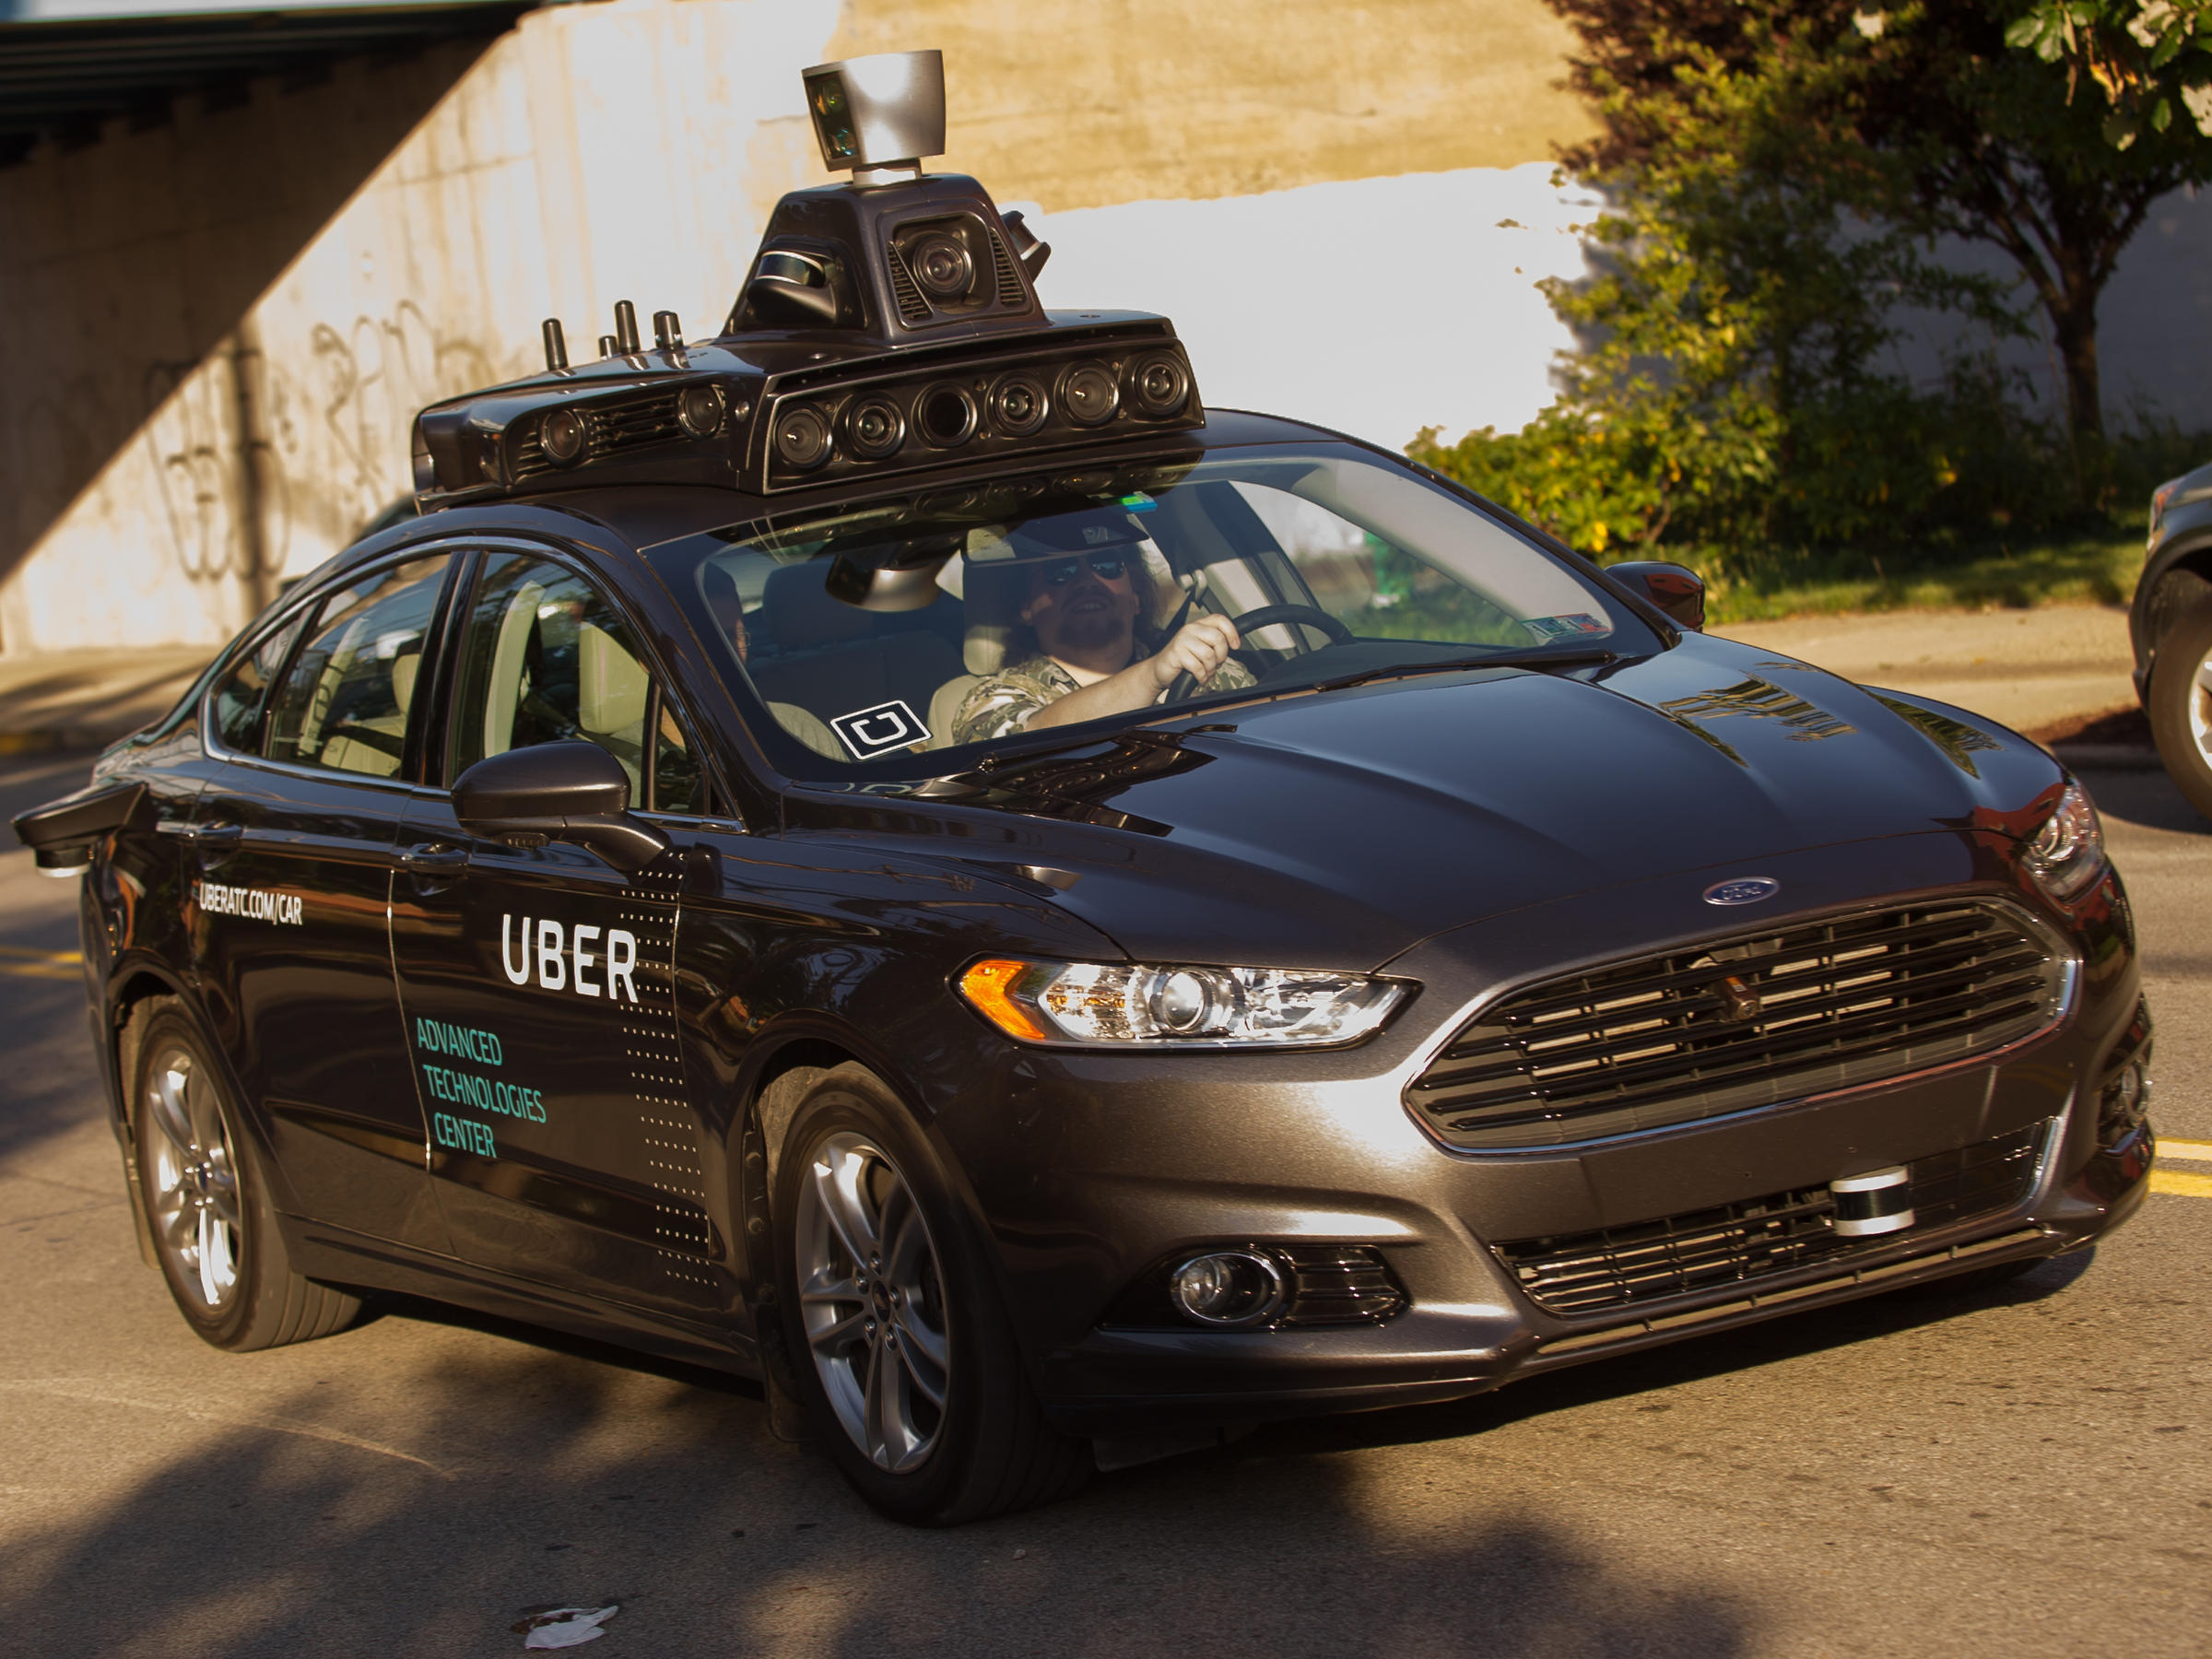 The Accident Involving Uber's Self-Driving Car Changes Little for College Users